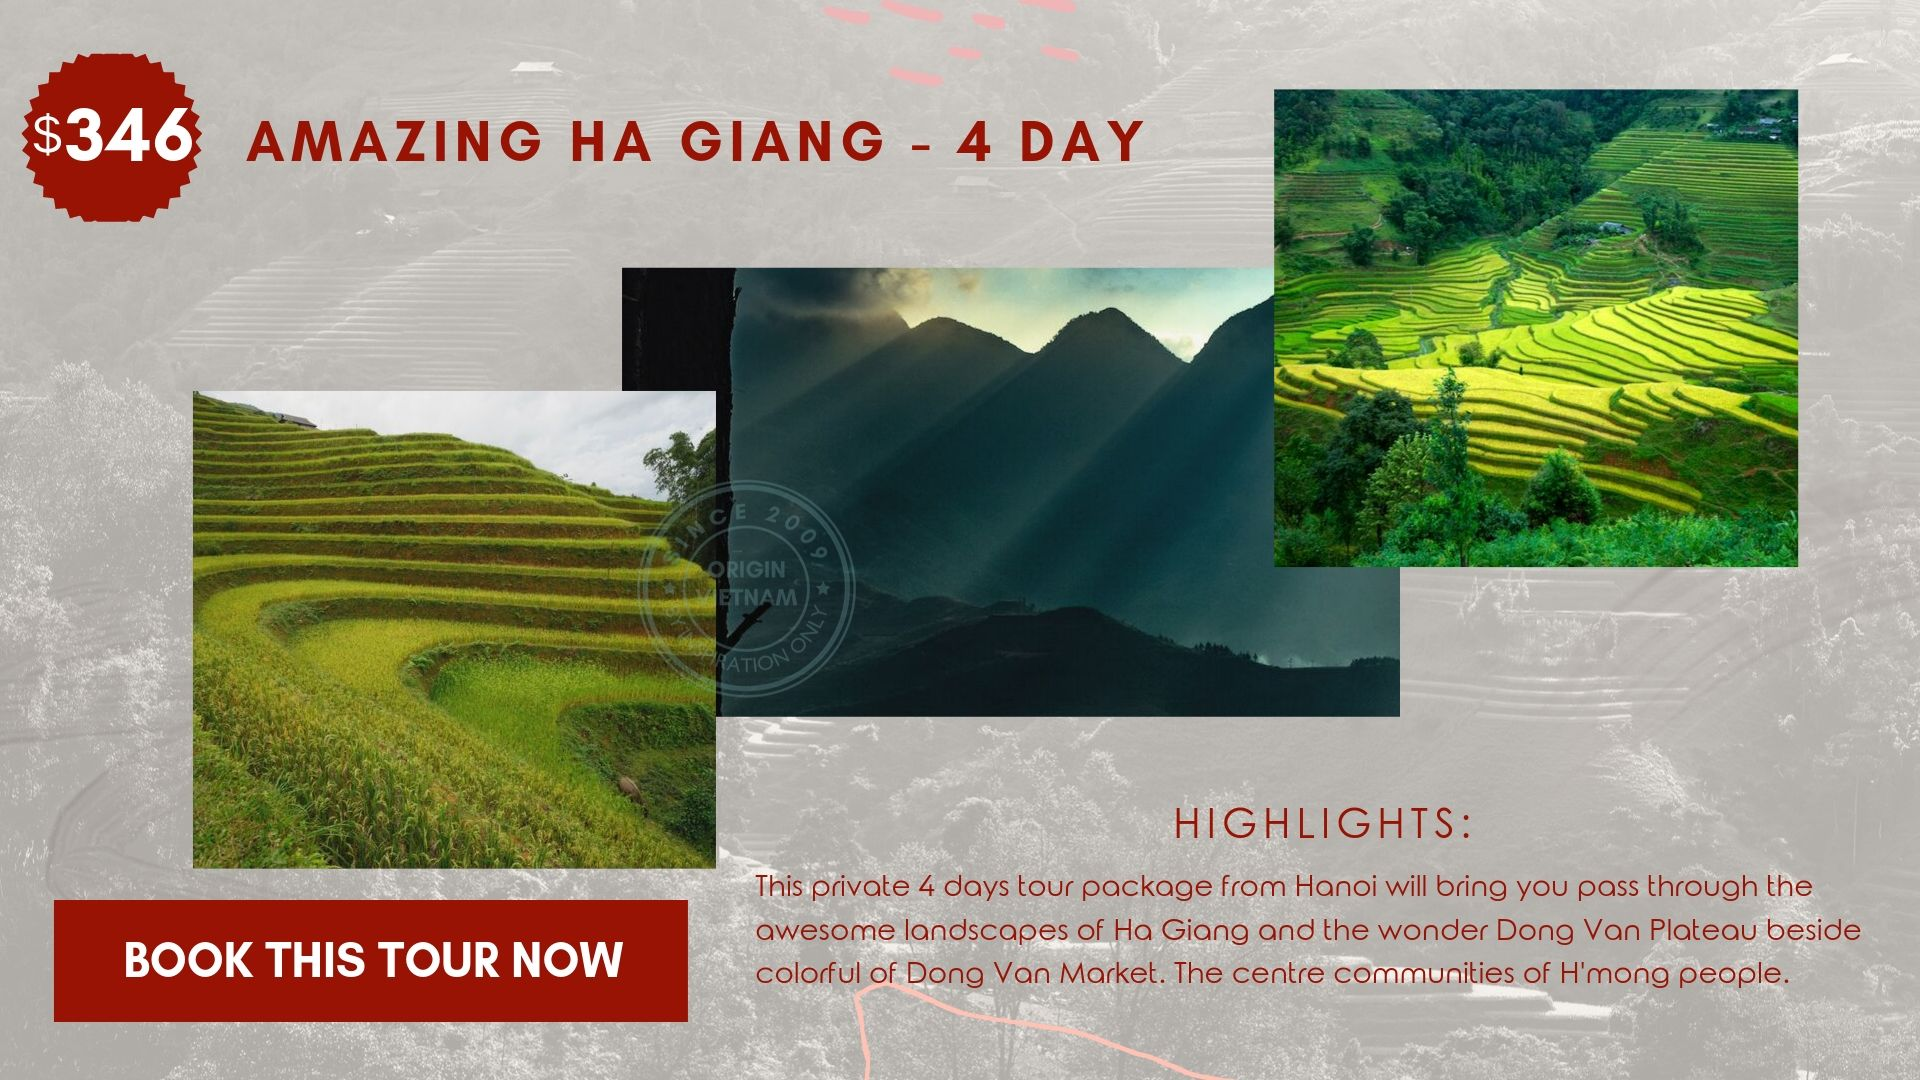 Ha Giang Tour 4 Day From Hanoi